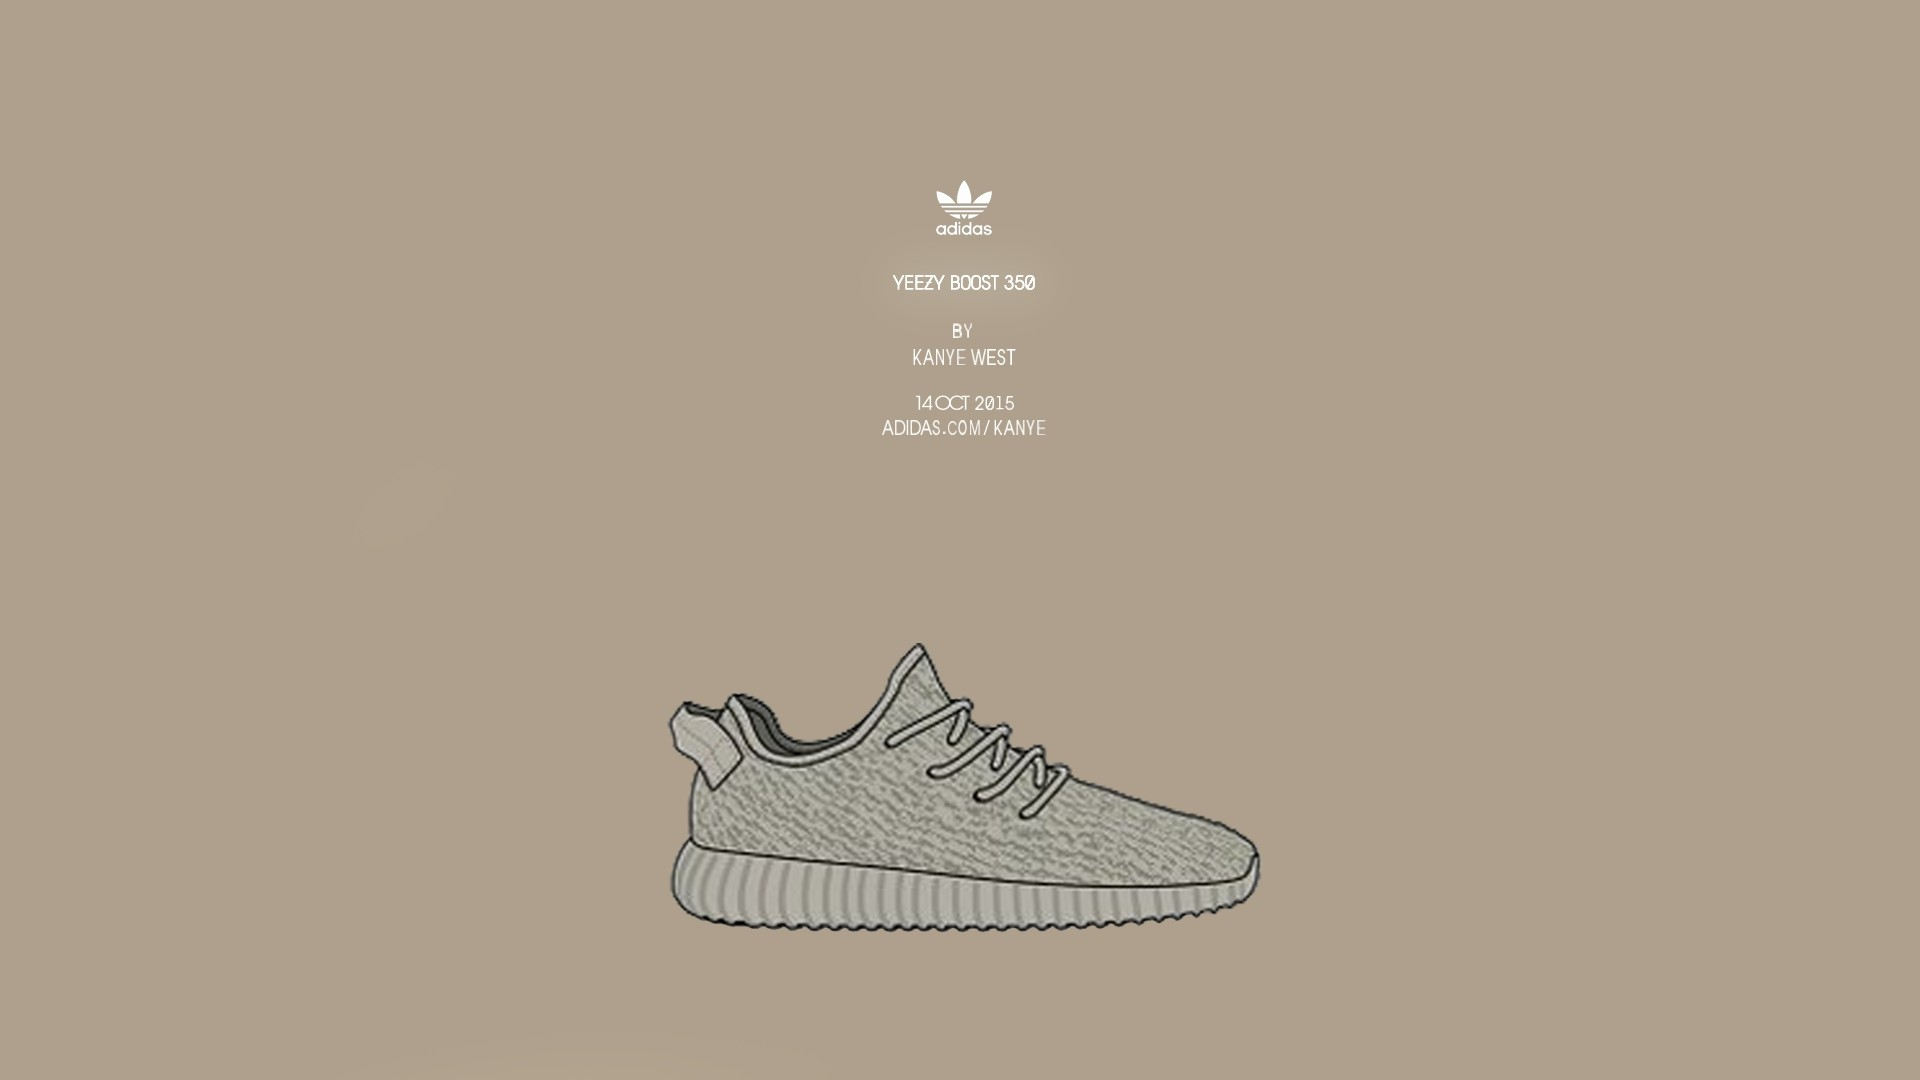 Yeezy Picture